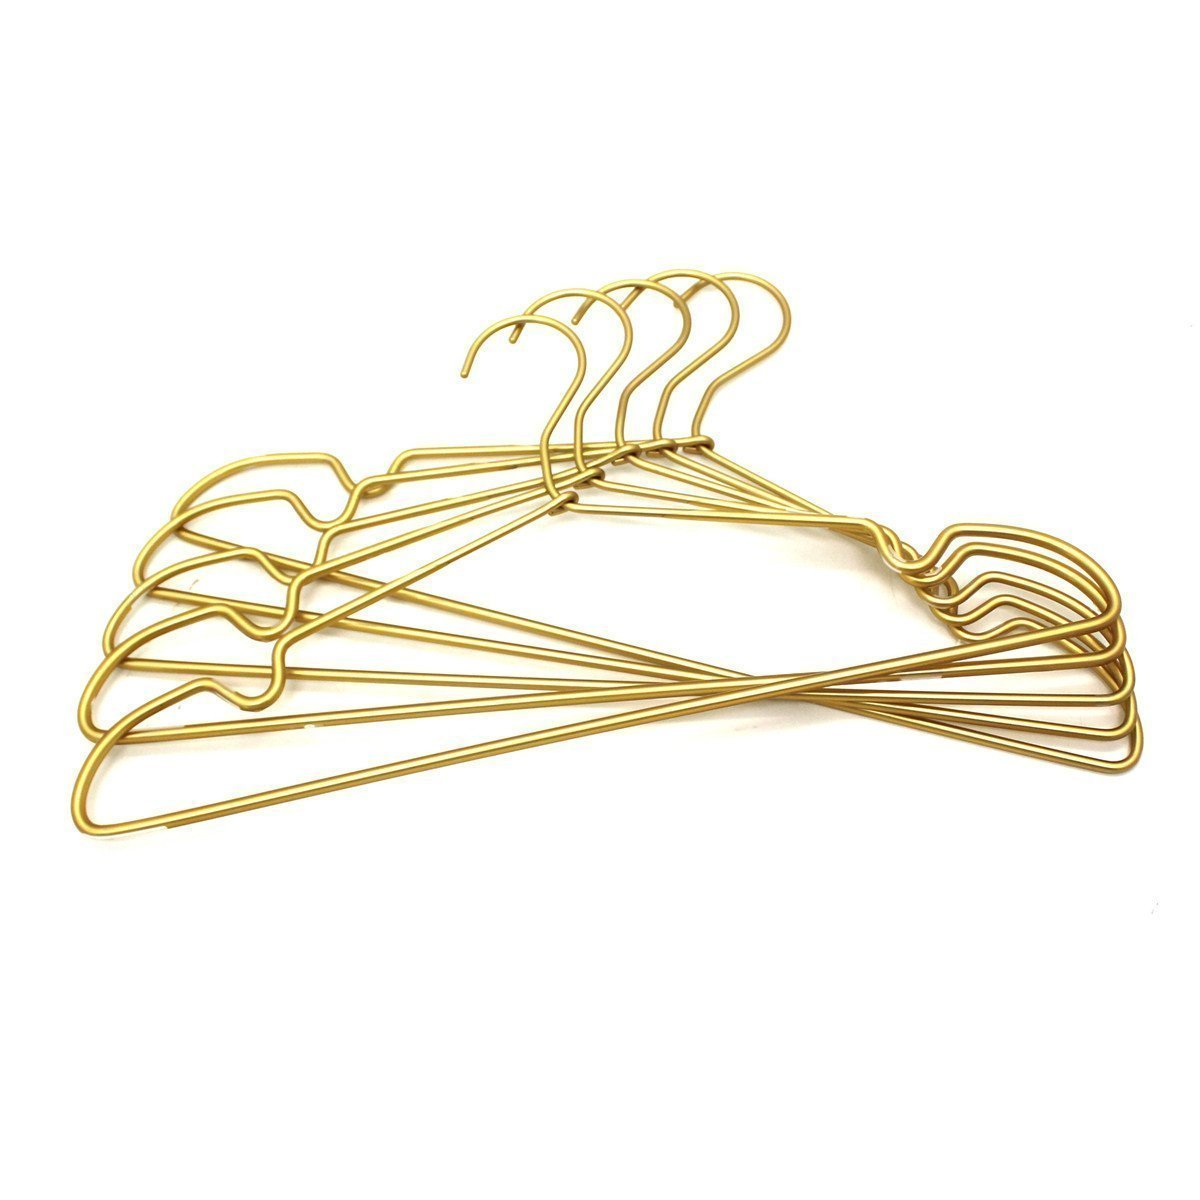 30Pack Koobay 16.5'' Gold Aluminum Laundry Wire Clothes Shirt Coat Suit Hangers with PVC-Coated and Notches